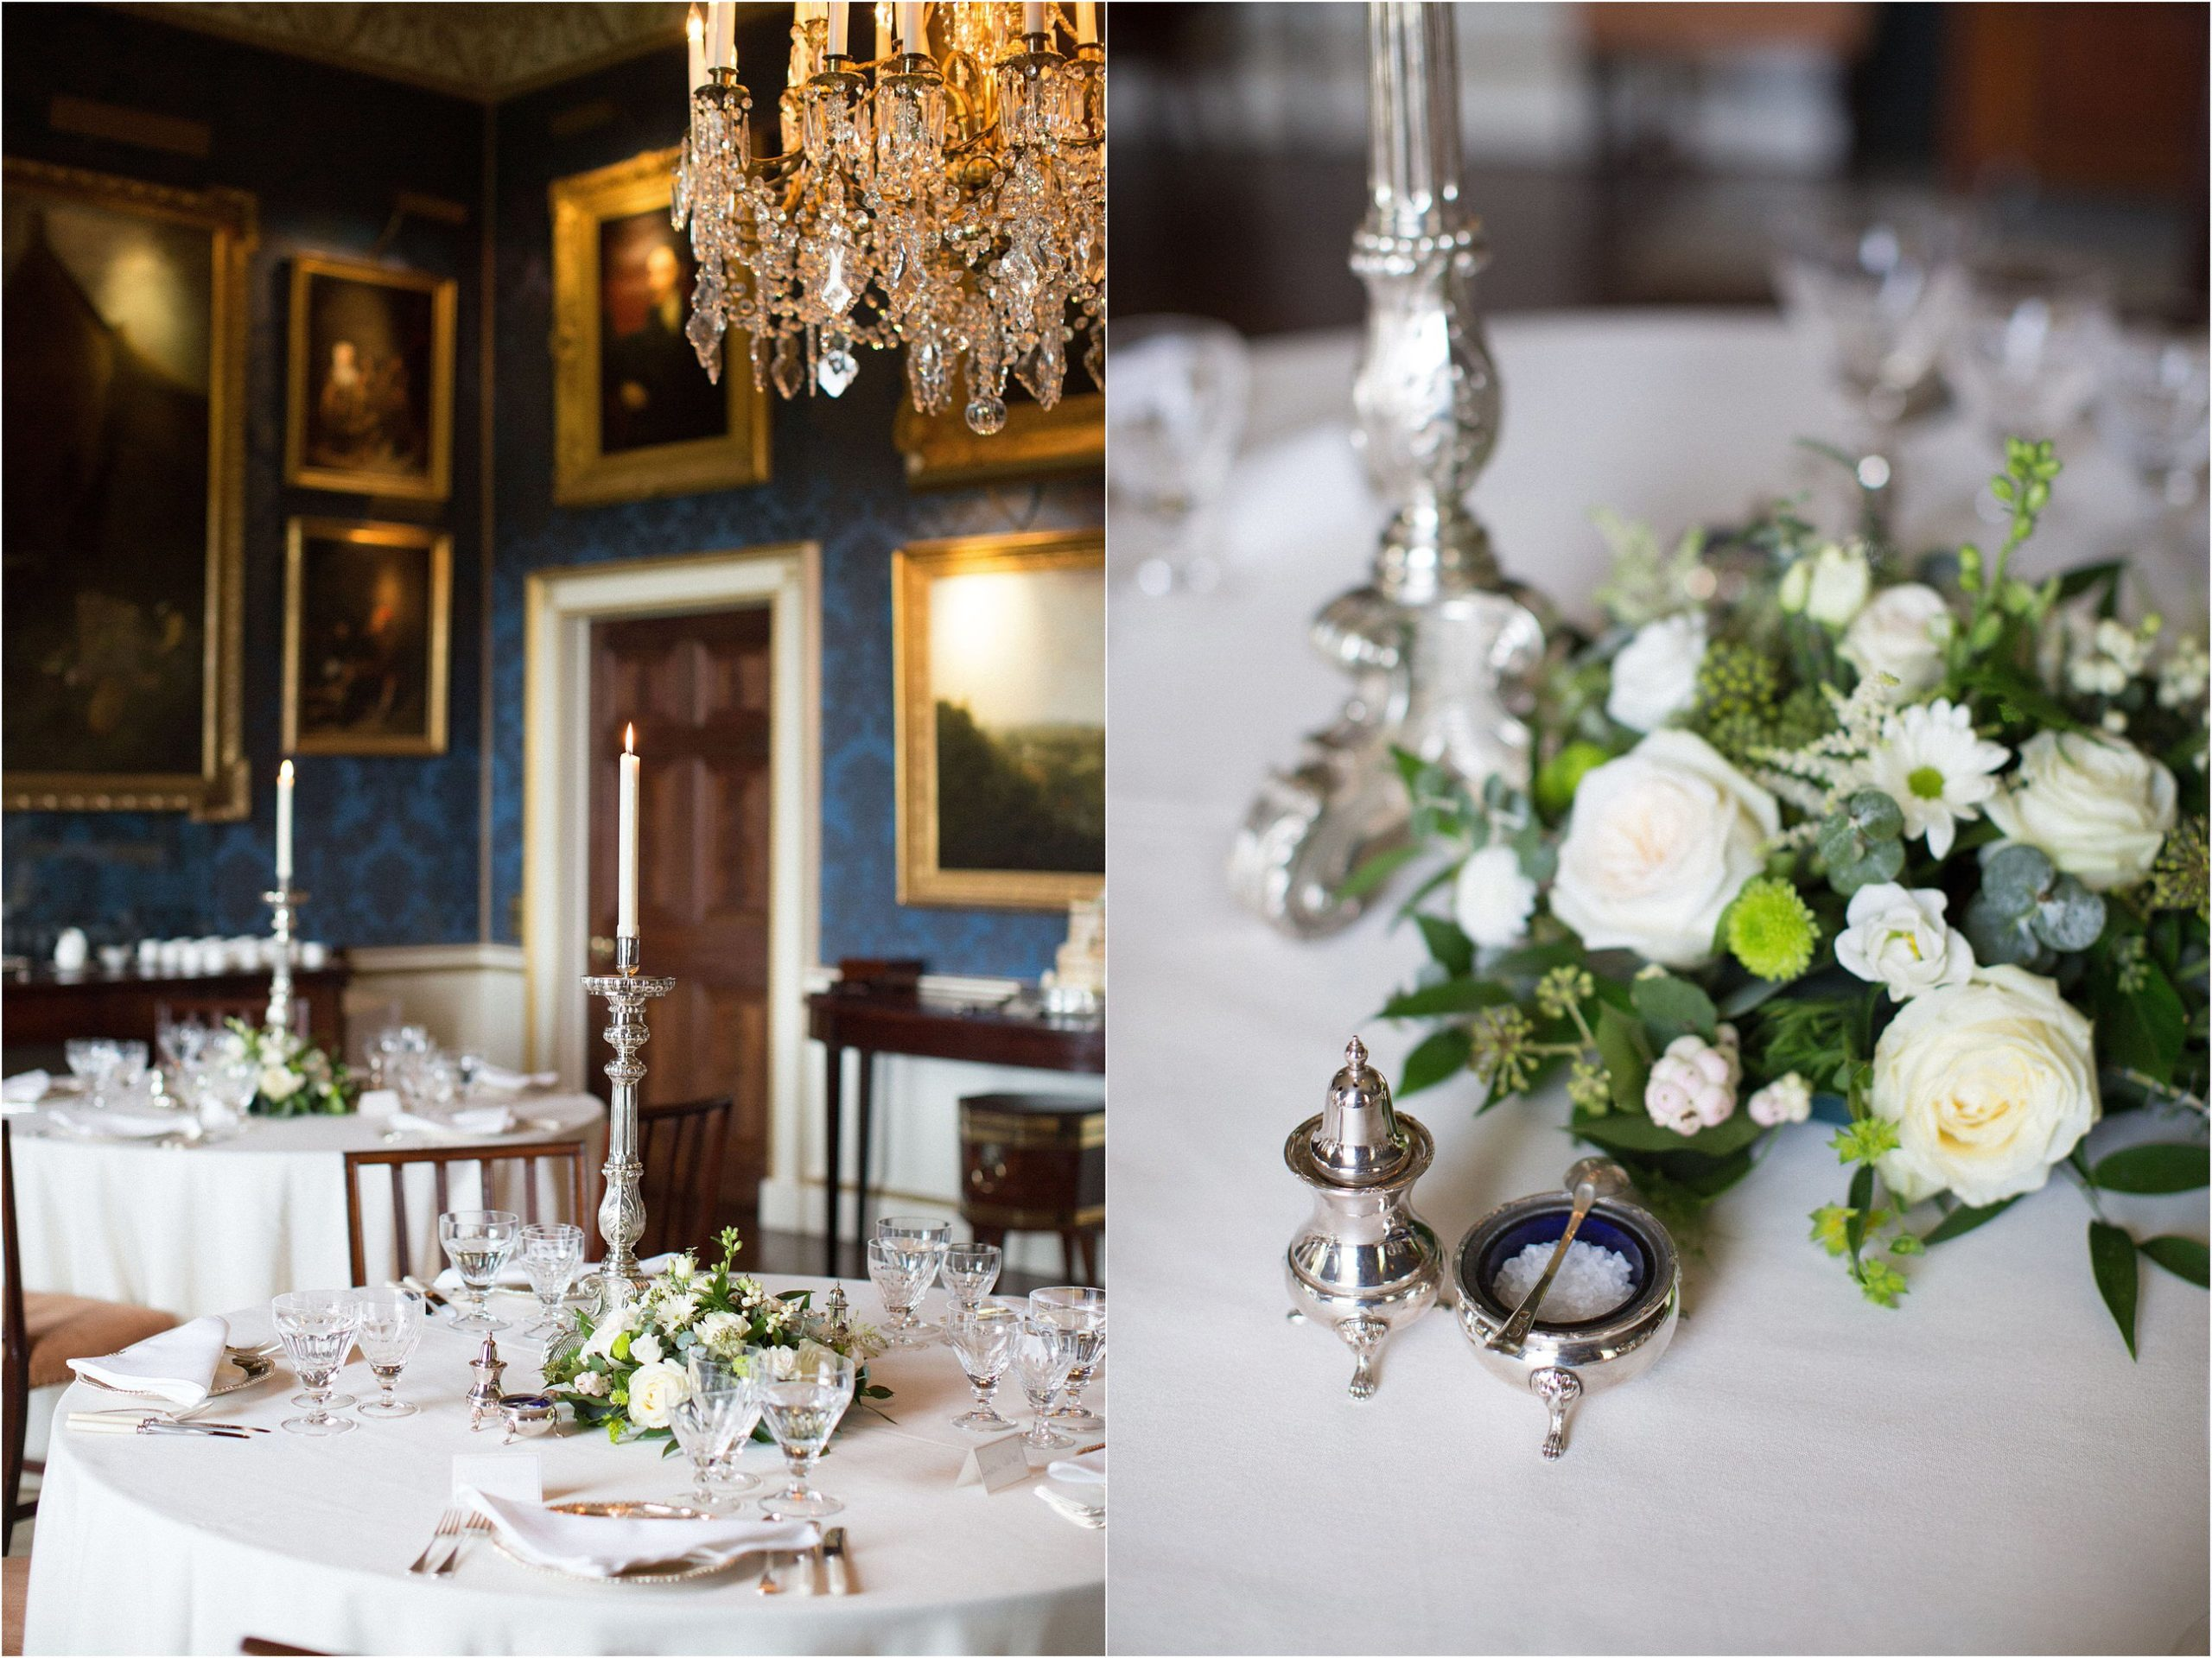 Wedding breakfast in dining room at Ugbrooke House